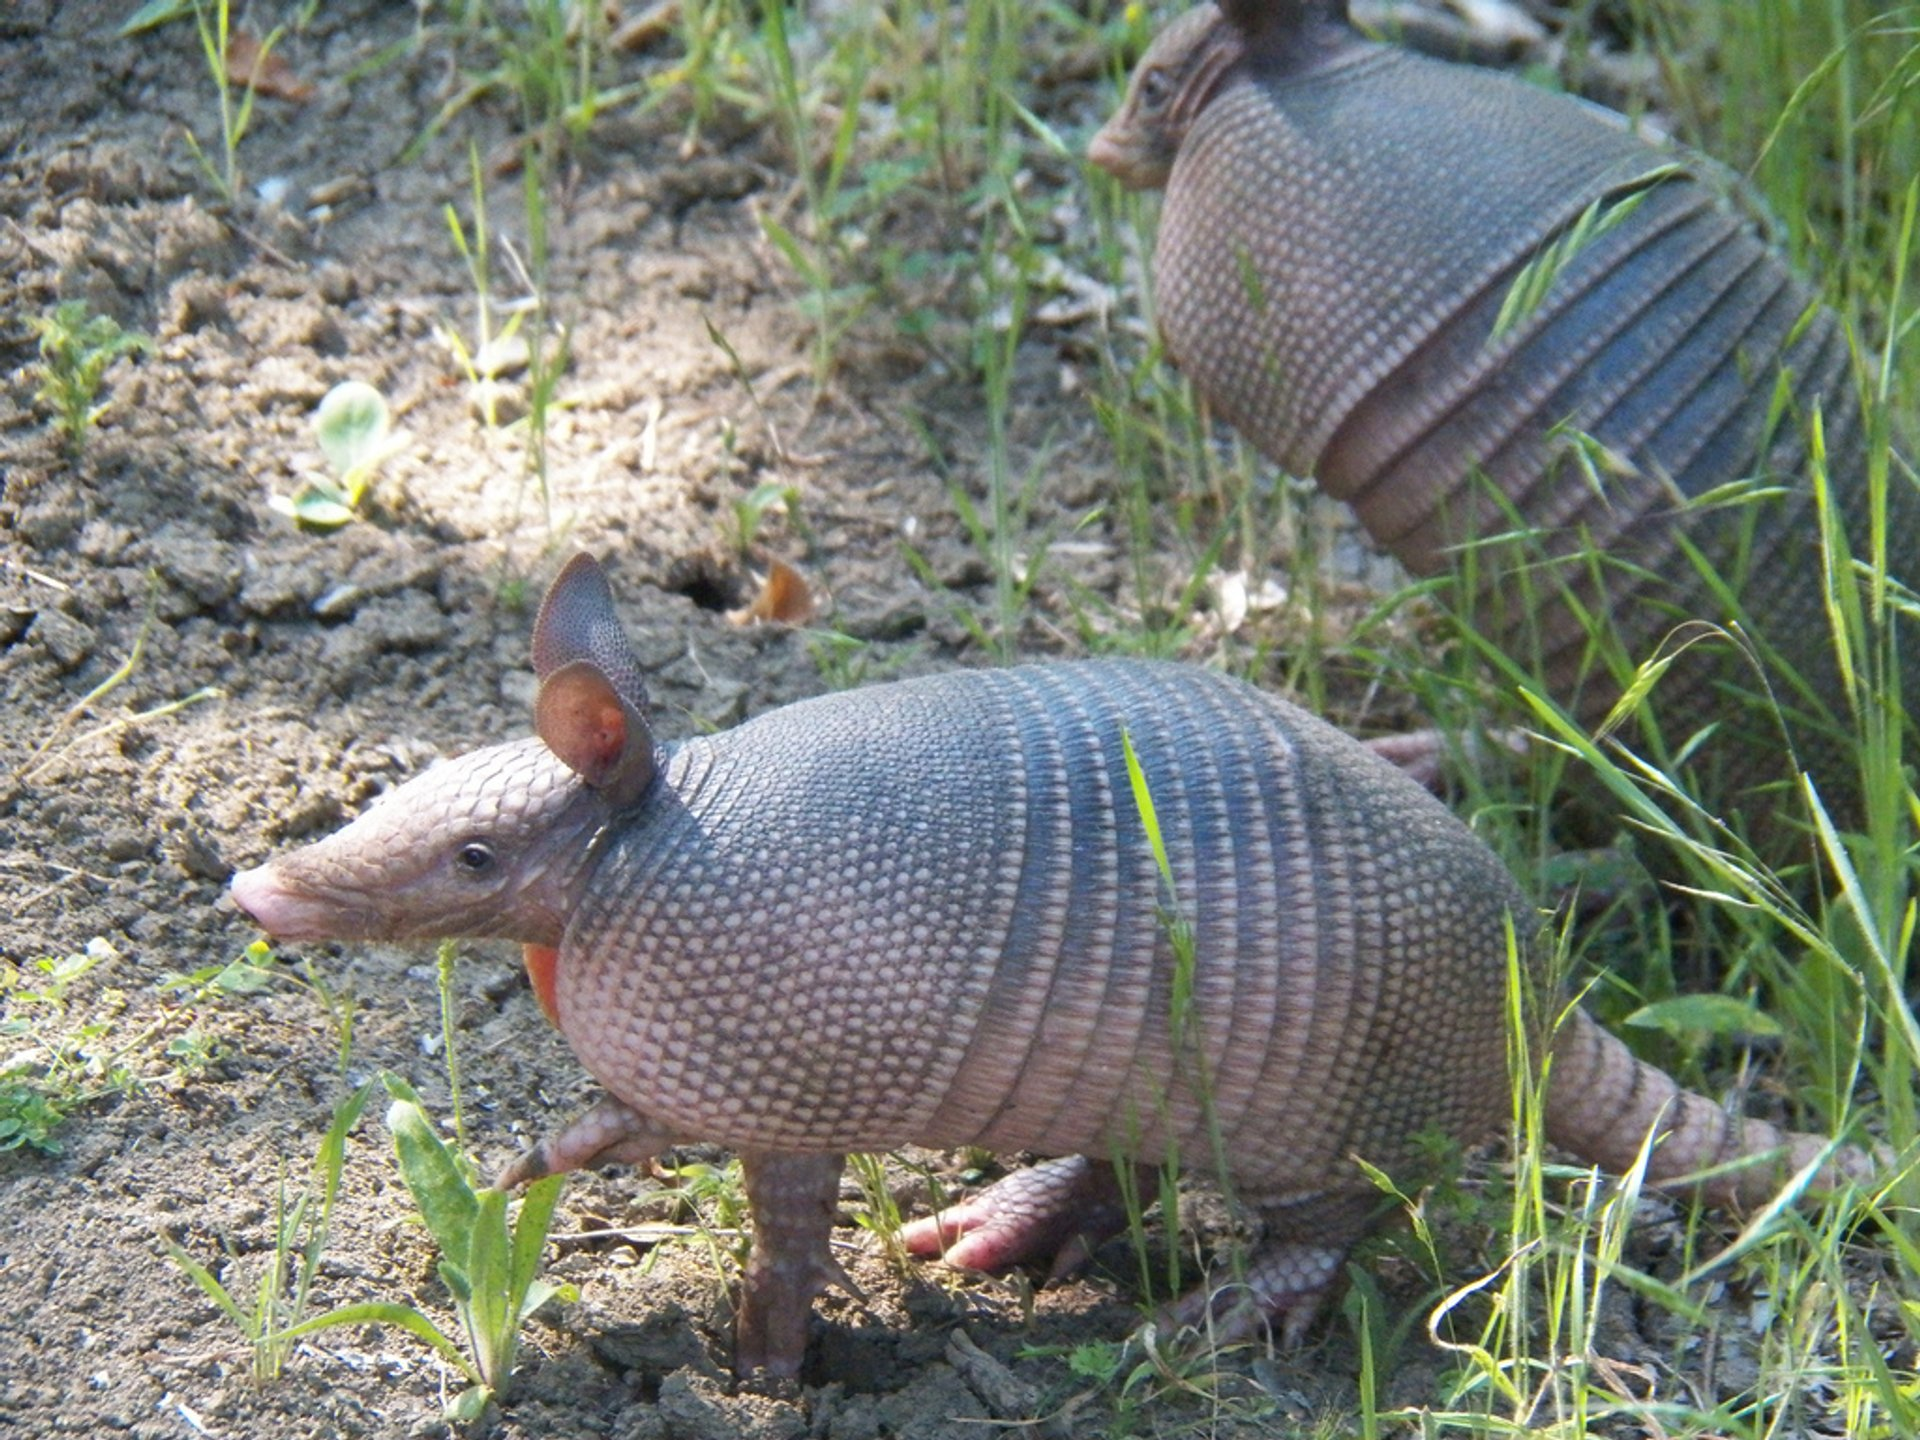 Nine-banded armadillo at Trinity Trail just north of Brockdale Park 2020